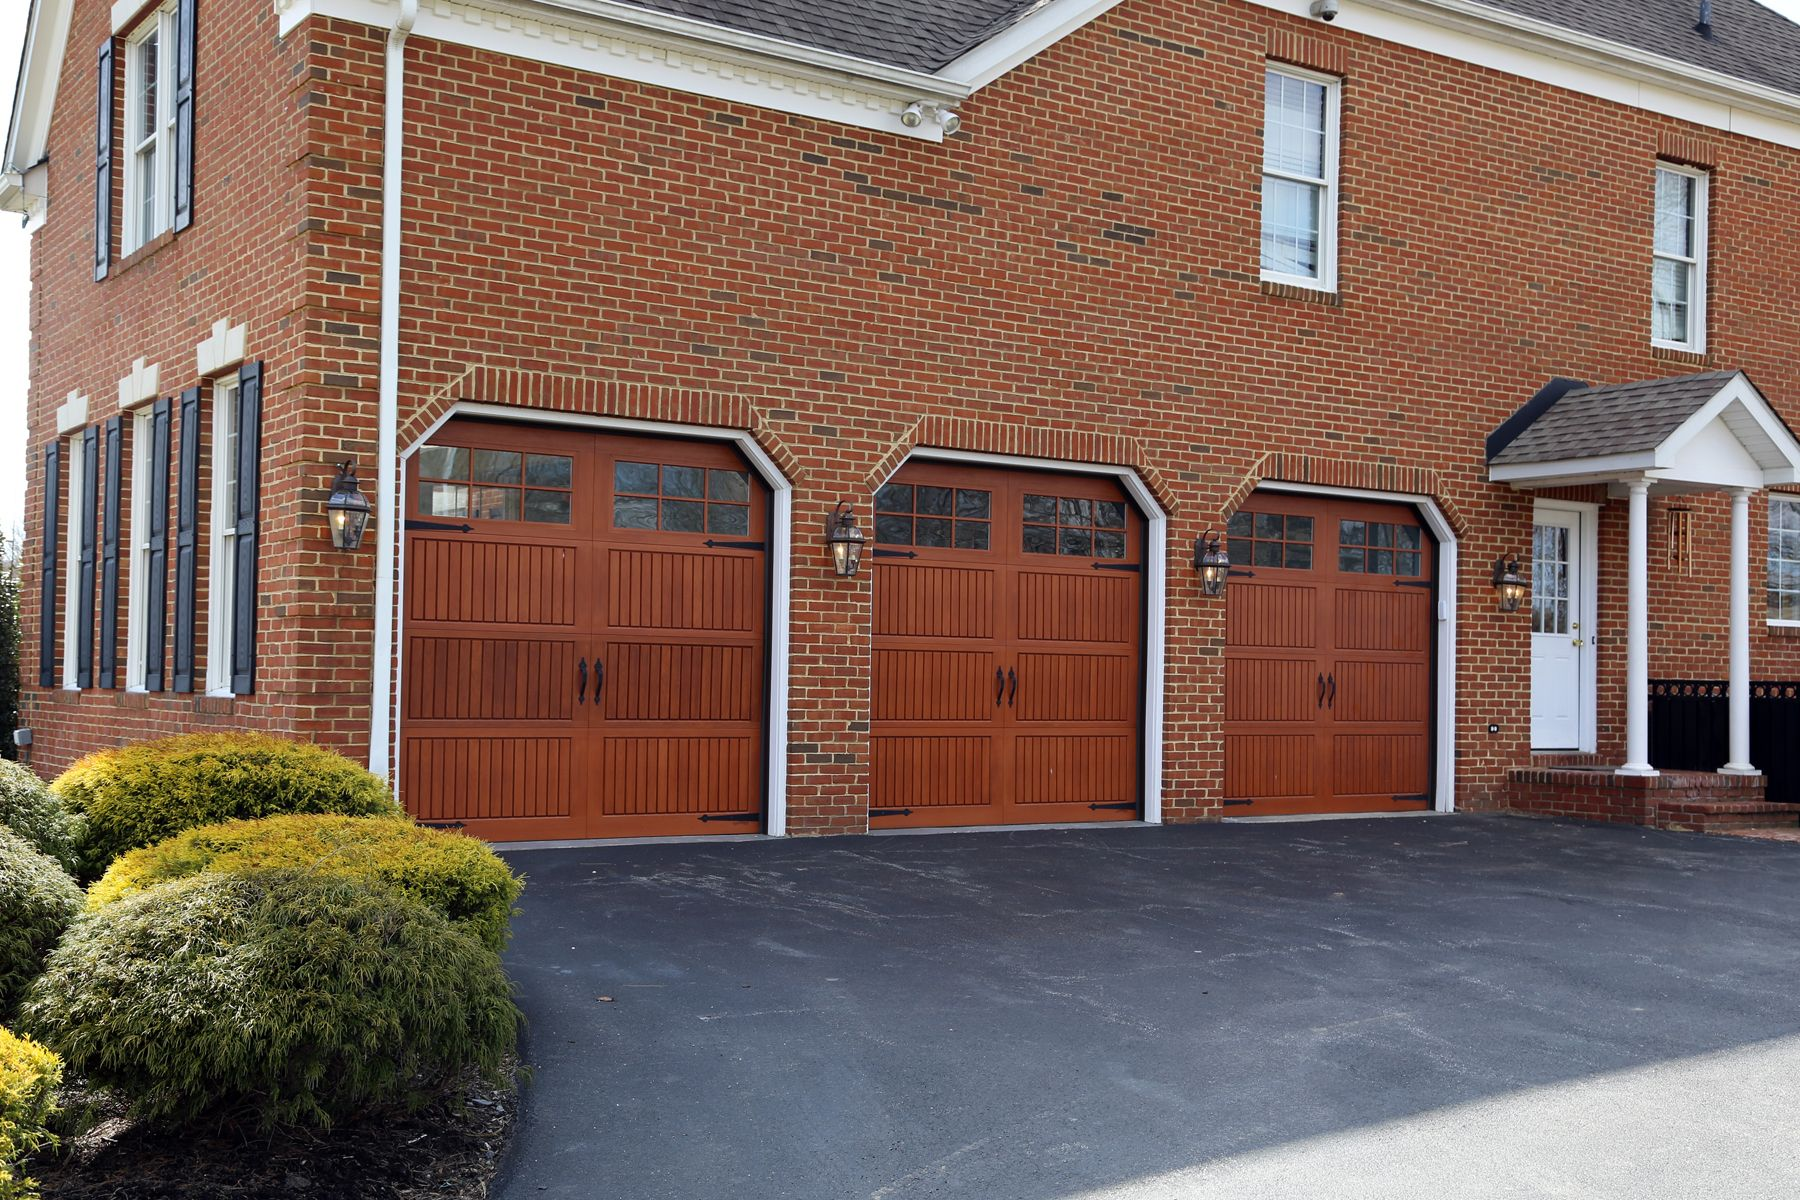 Beautiful fiberglass garage doors installed on a home in Bethesda MD. Impression Collection garage doors require much less maintenance than natural wood. & Impression Collection Model 983 Garage Doors in a Cherry Stain ...